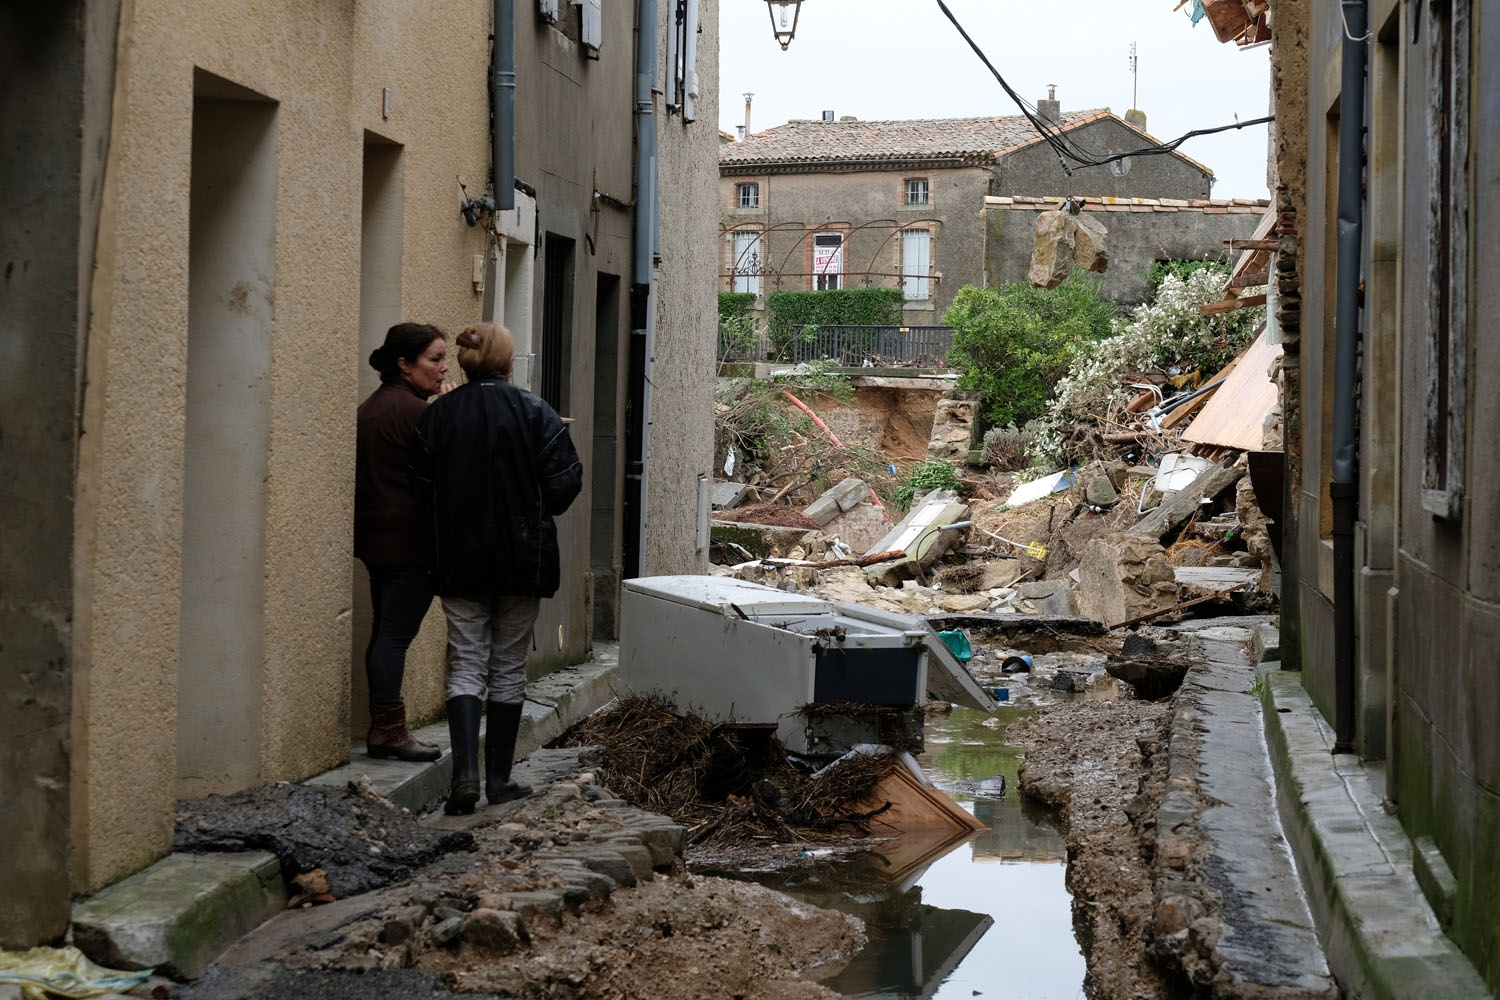 Residents look at the damaged on October 15, 2018 in Villegailhenc, after flash floods swamped a number of towns and villages around the fortress city of Carcassonne, southern France. -